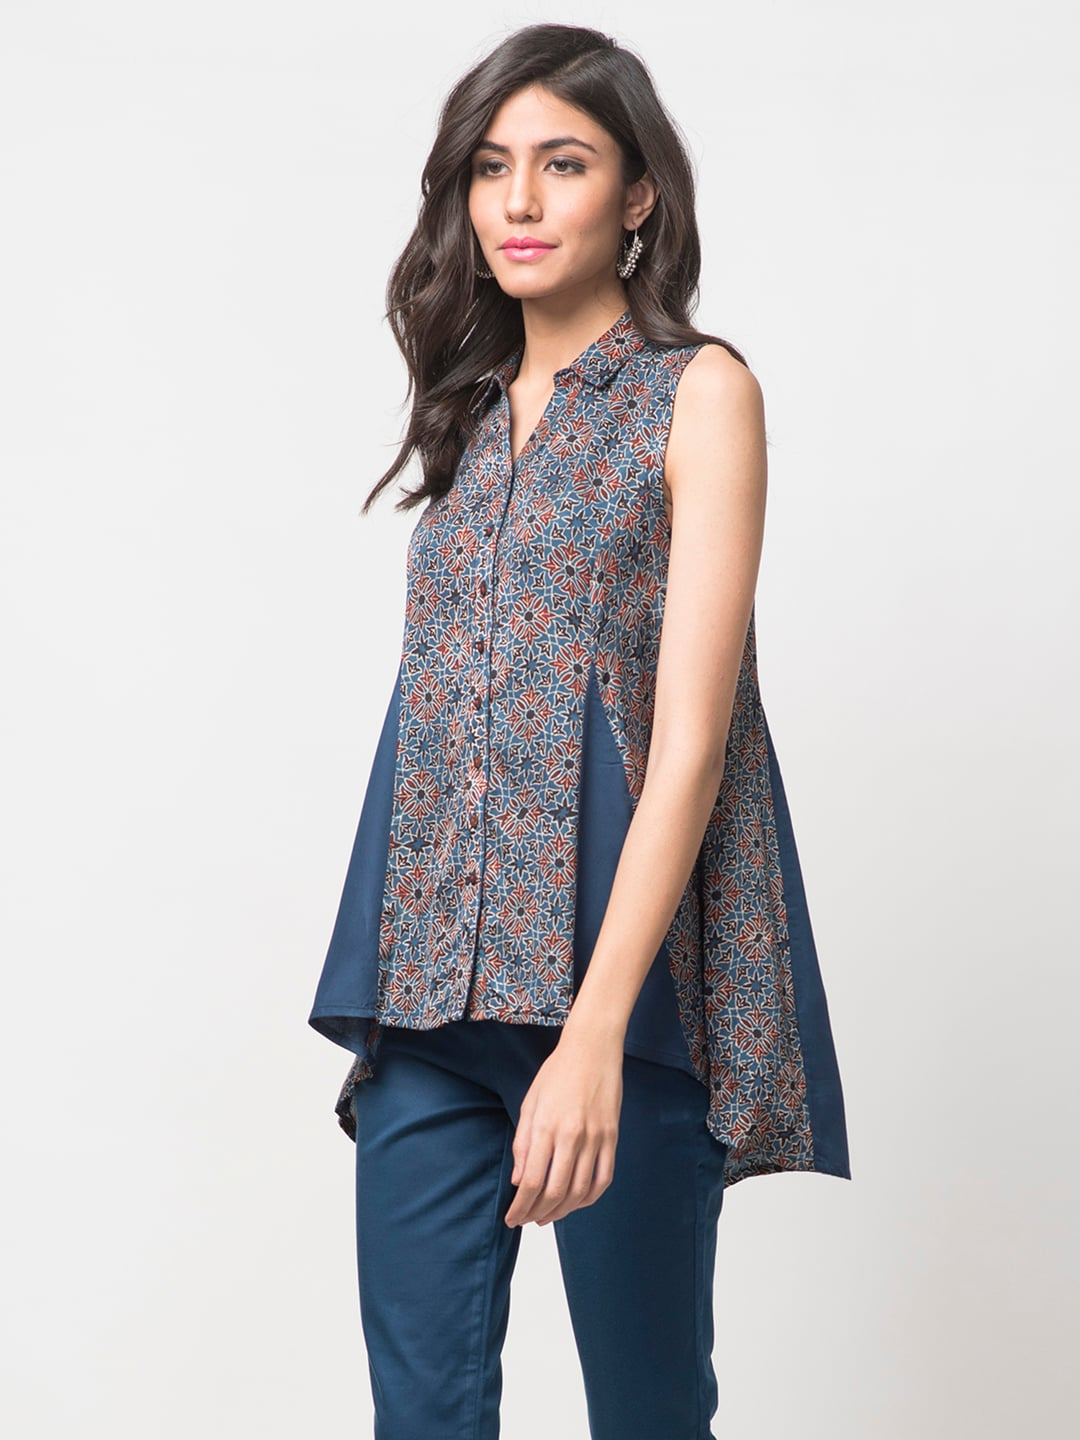 85330d117be0c Fabindia - Fabindia Clothing Online Store in India